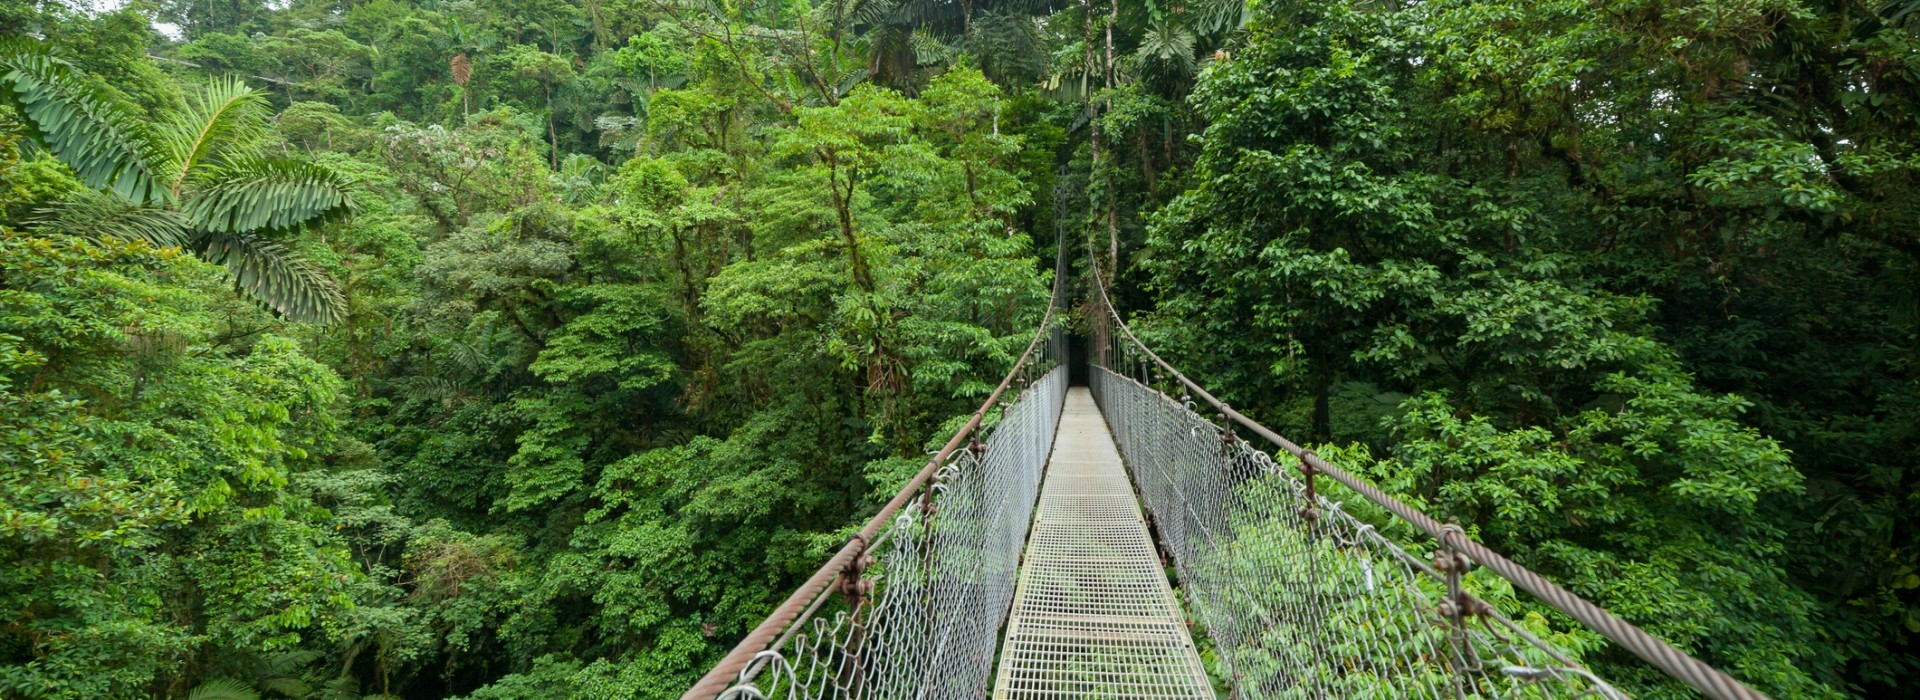 Walk the Sky Bridge in Monteverde and view the rainforest from a different angle.